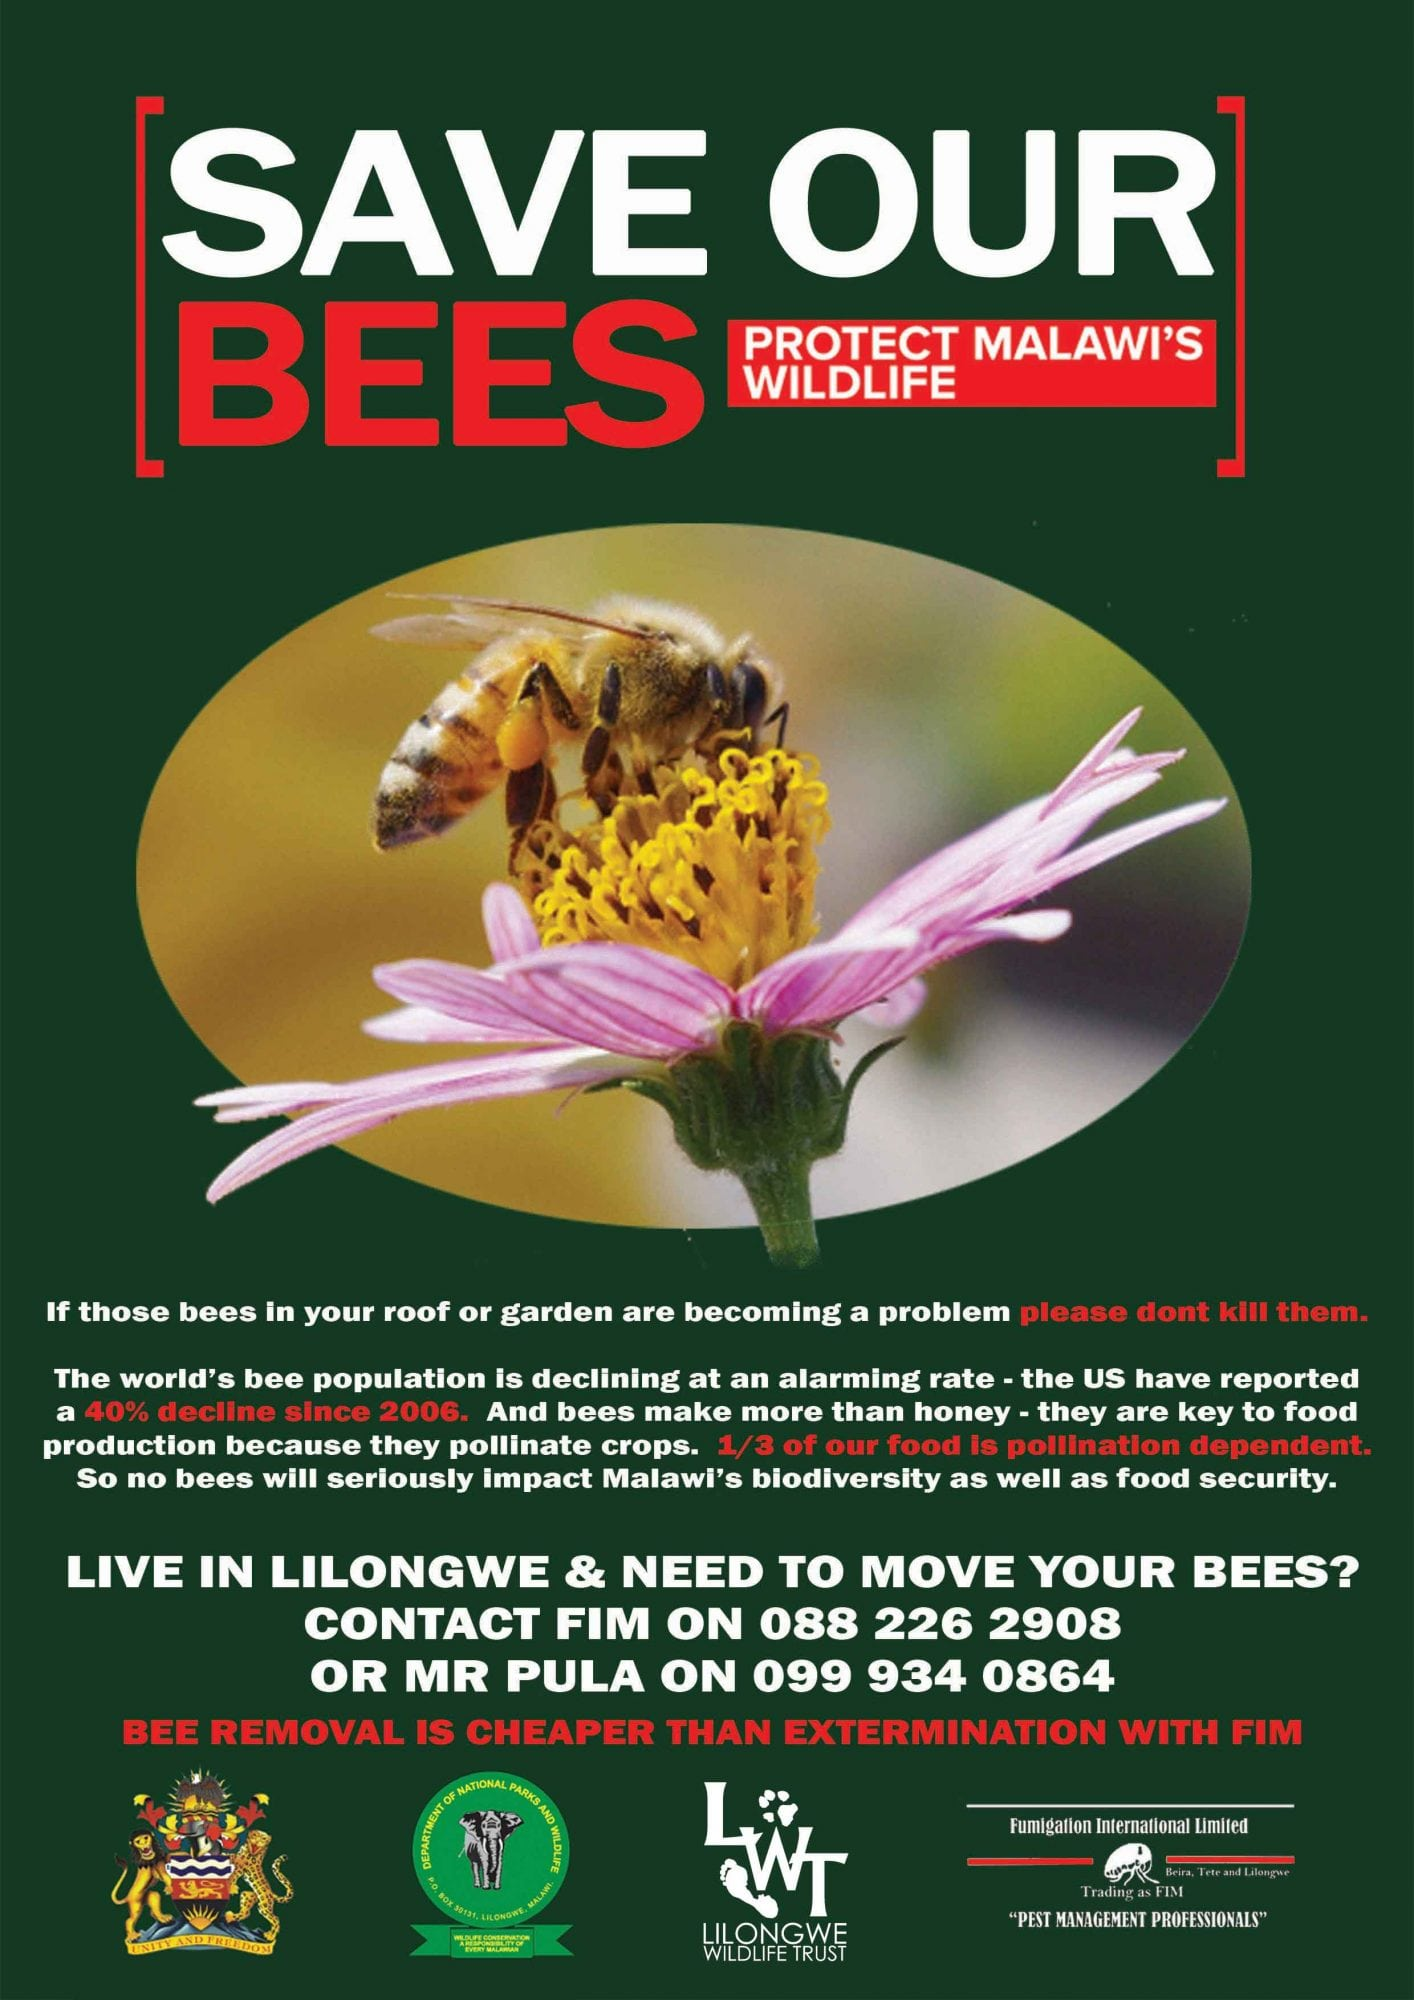 SAVE OUR BEES CAMPAIGN